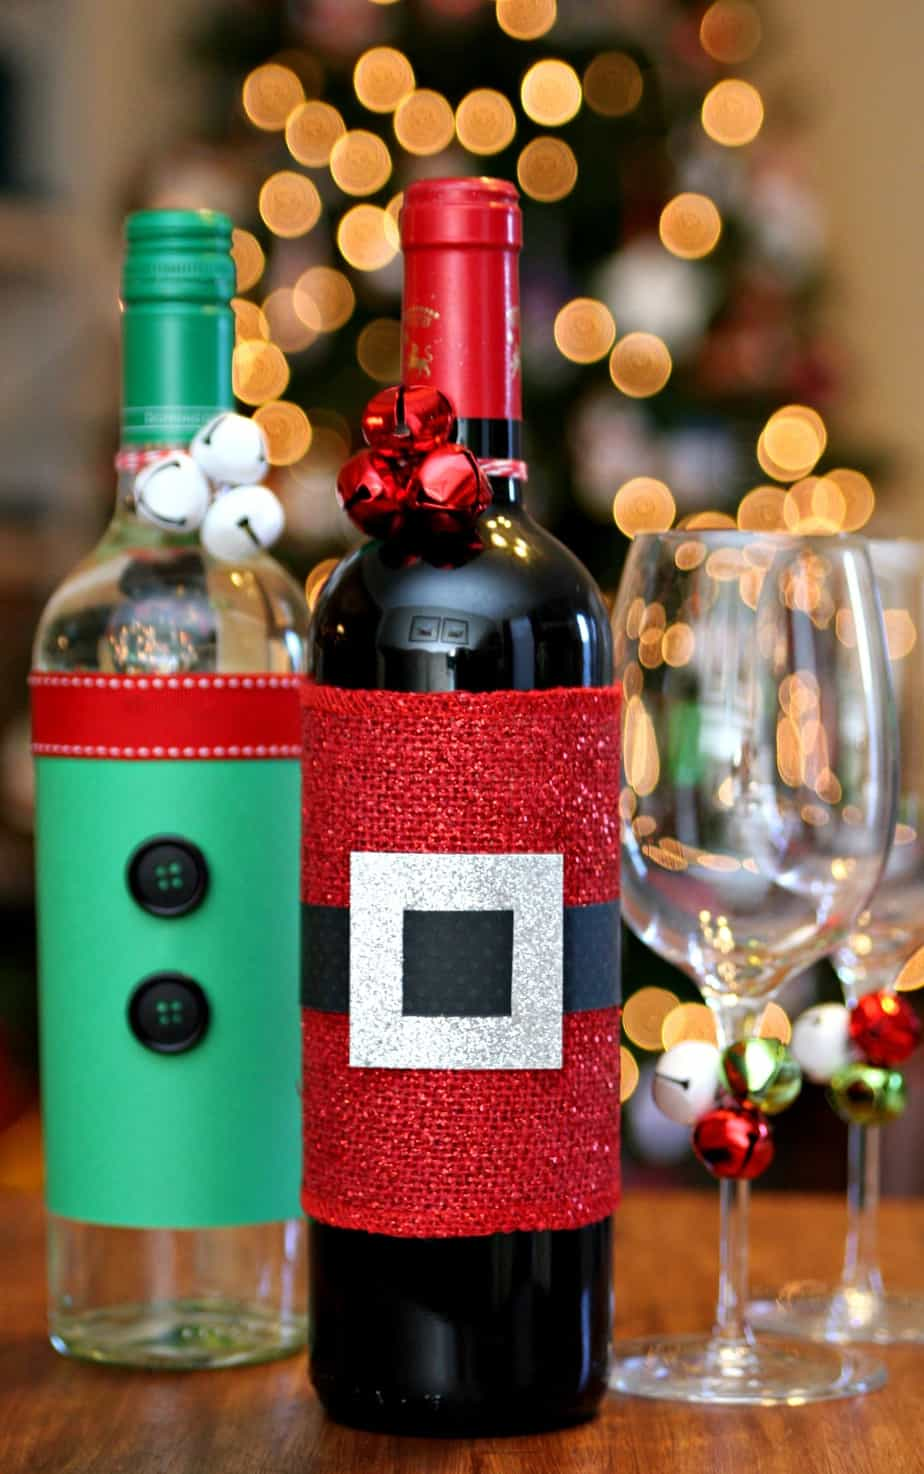 Festive Wine Bottles - Set up a Wine Station